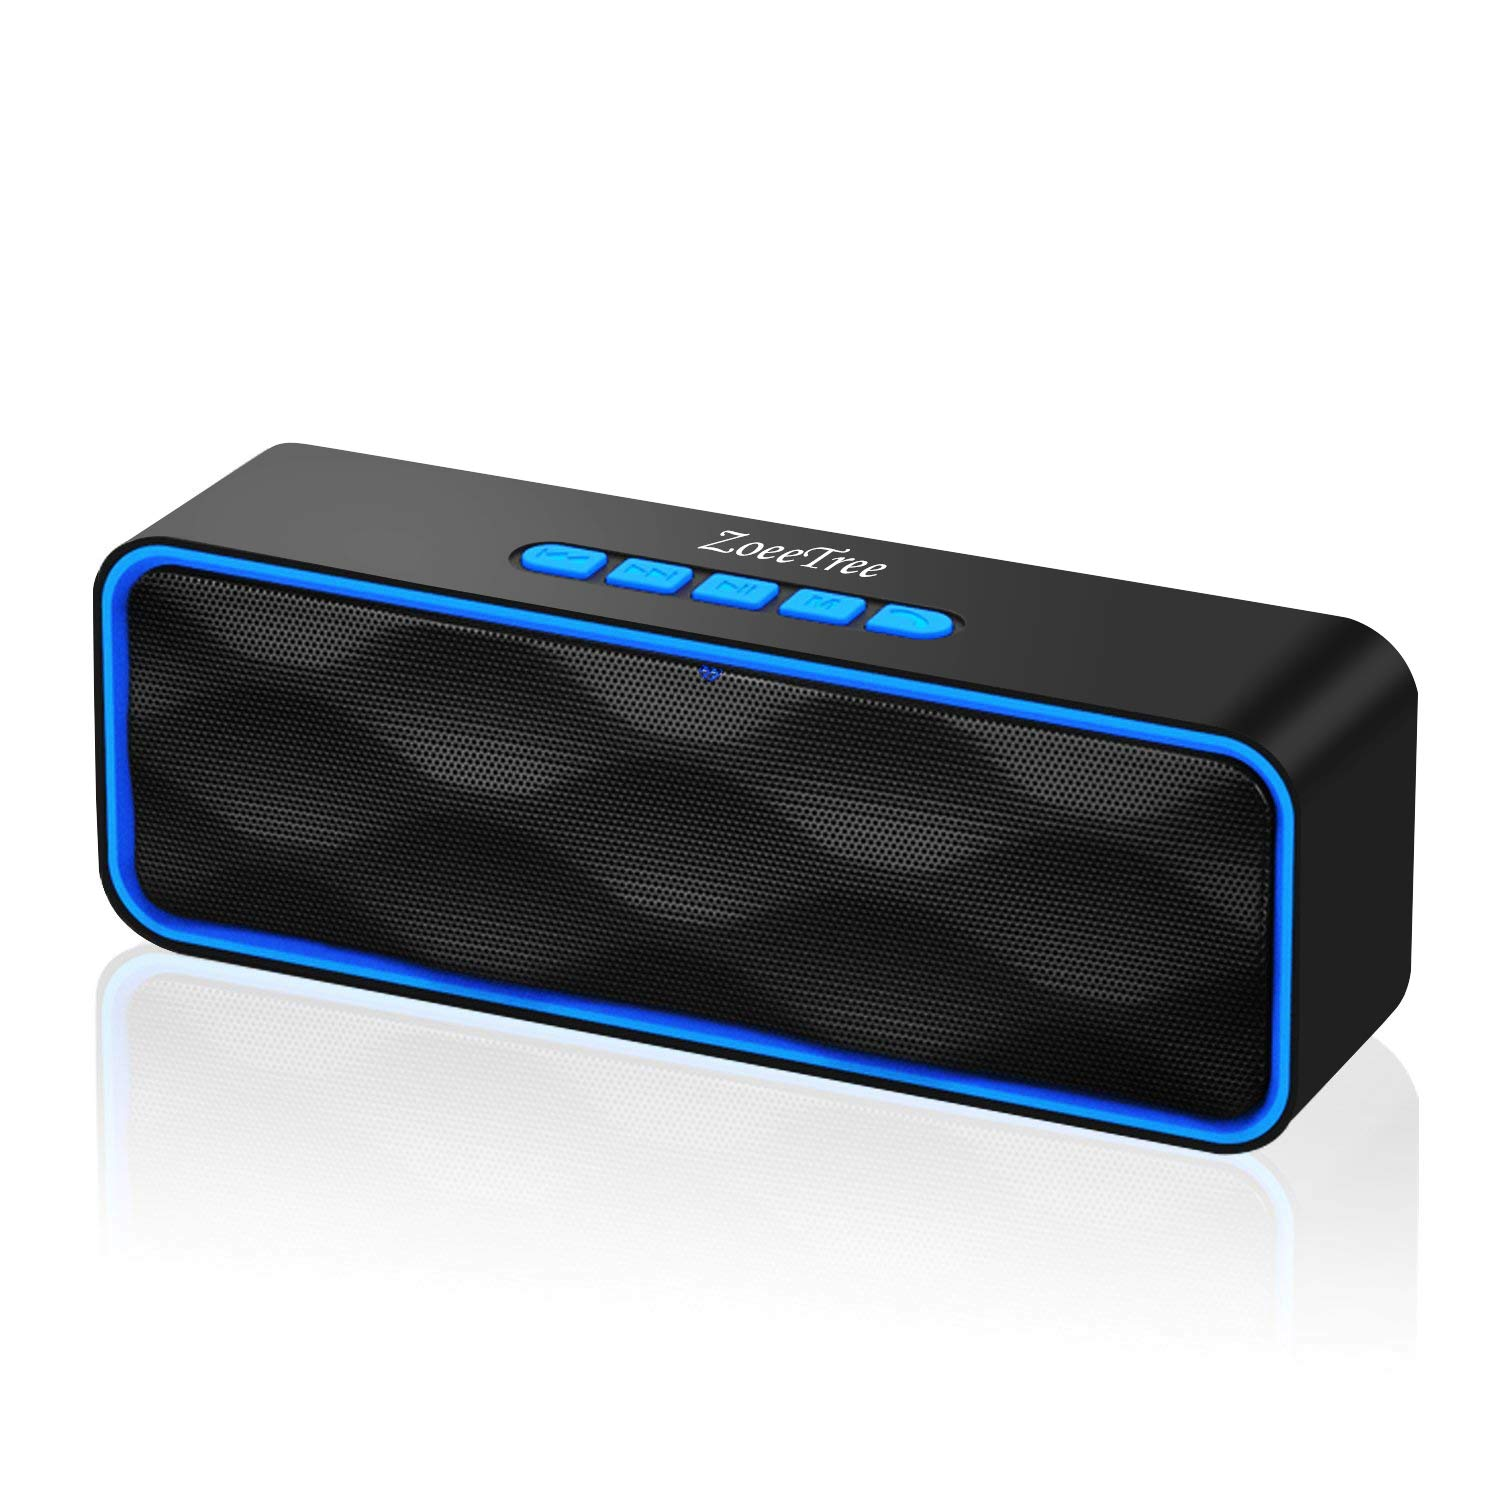 ZoeeTree S1 Wireless Bluetooth Speaker with HD Audio and Enhanced Bass, Built-In Dual Driver Speakerphone